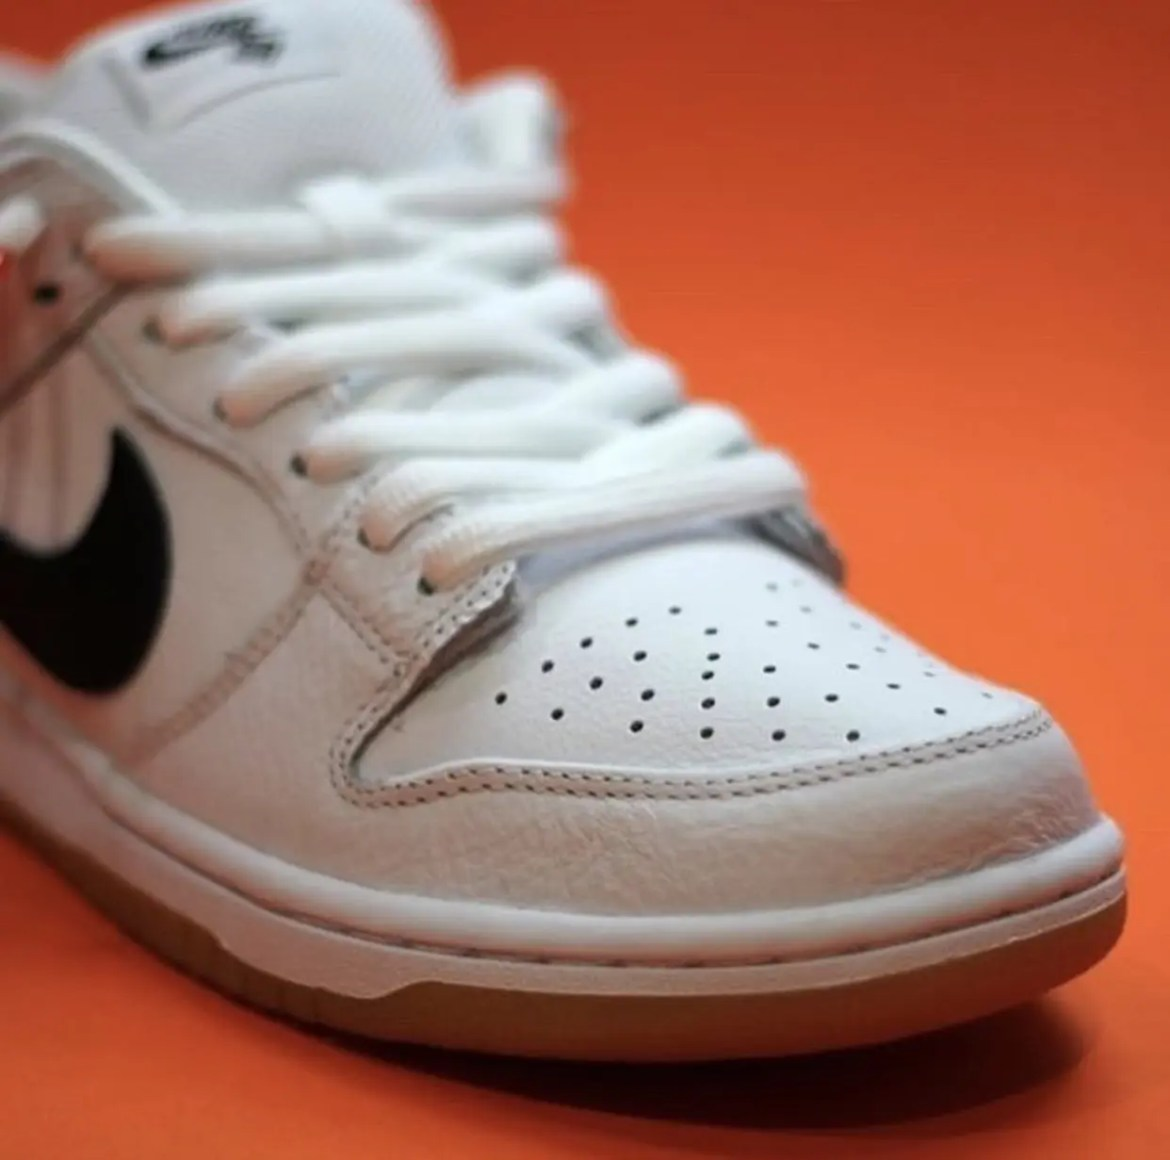 Nike-SB-Dunk-Low-Orange-Label-White-Gum-Release-Date-2